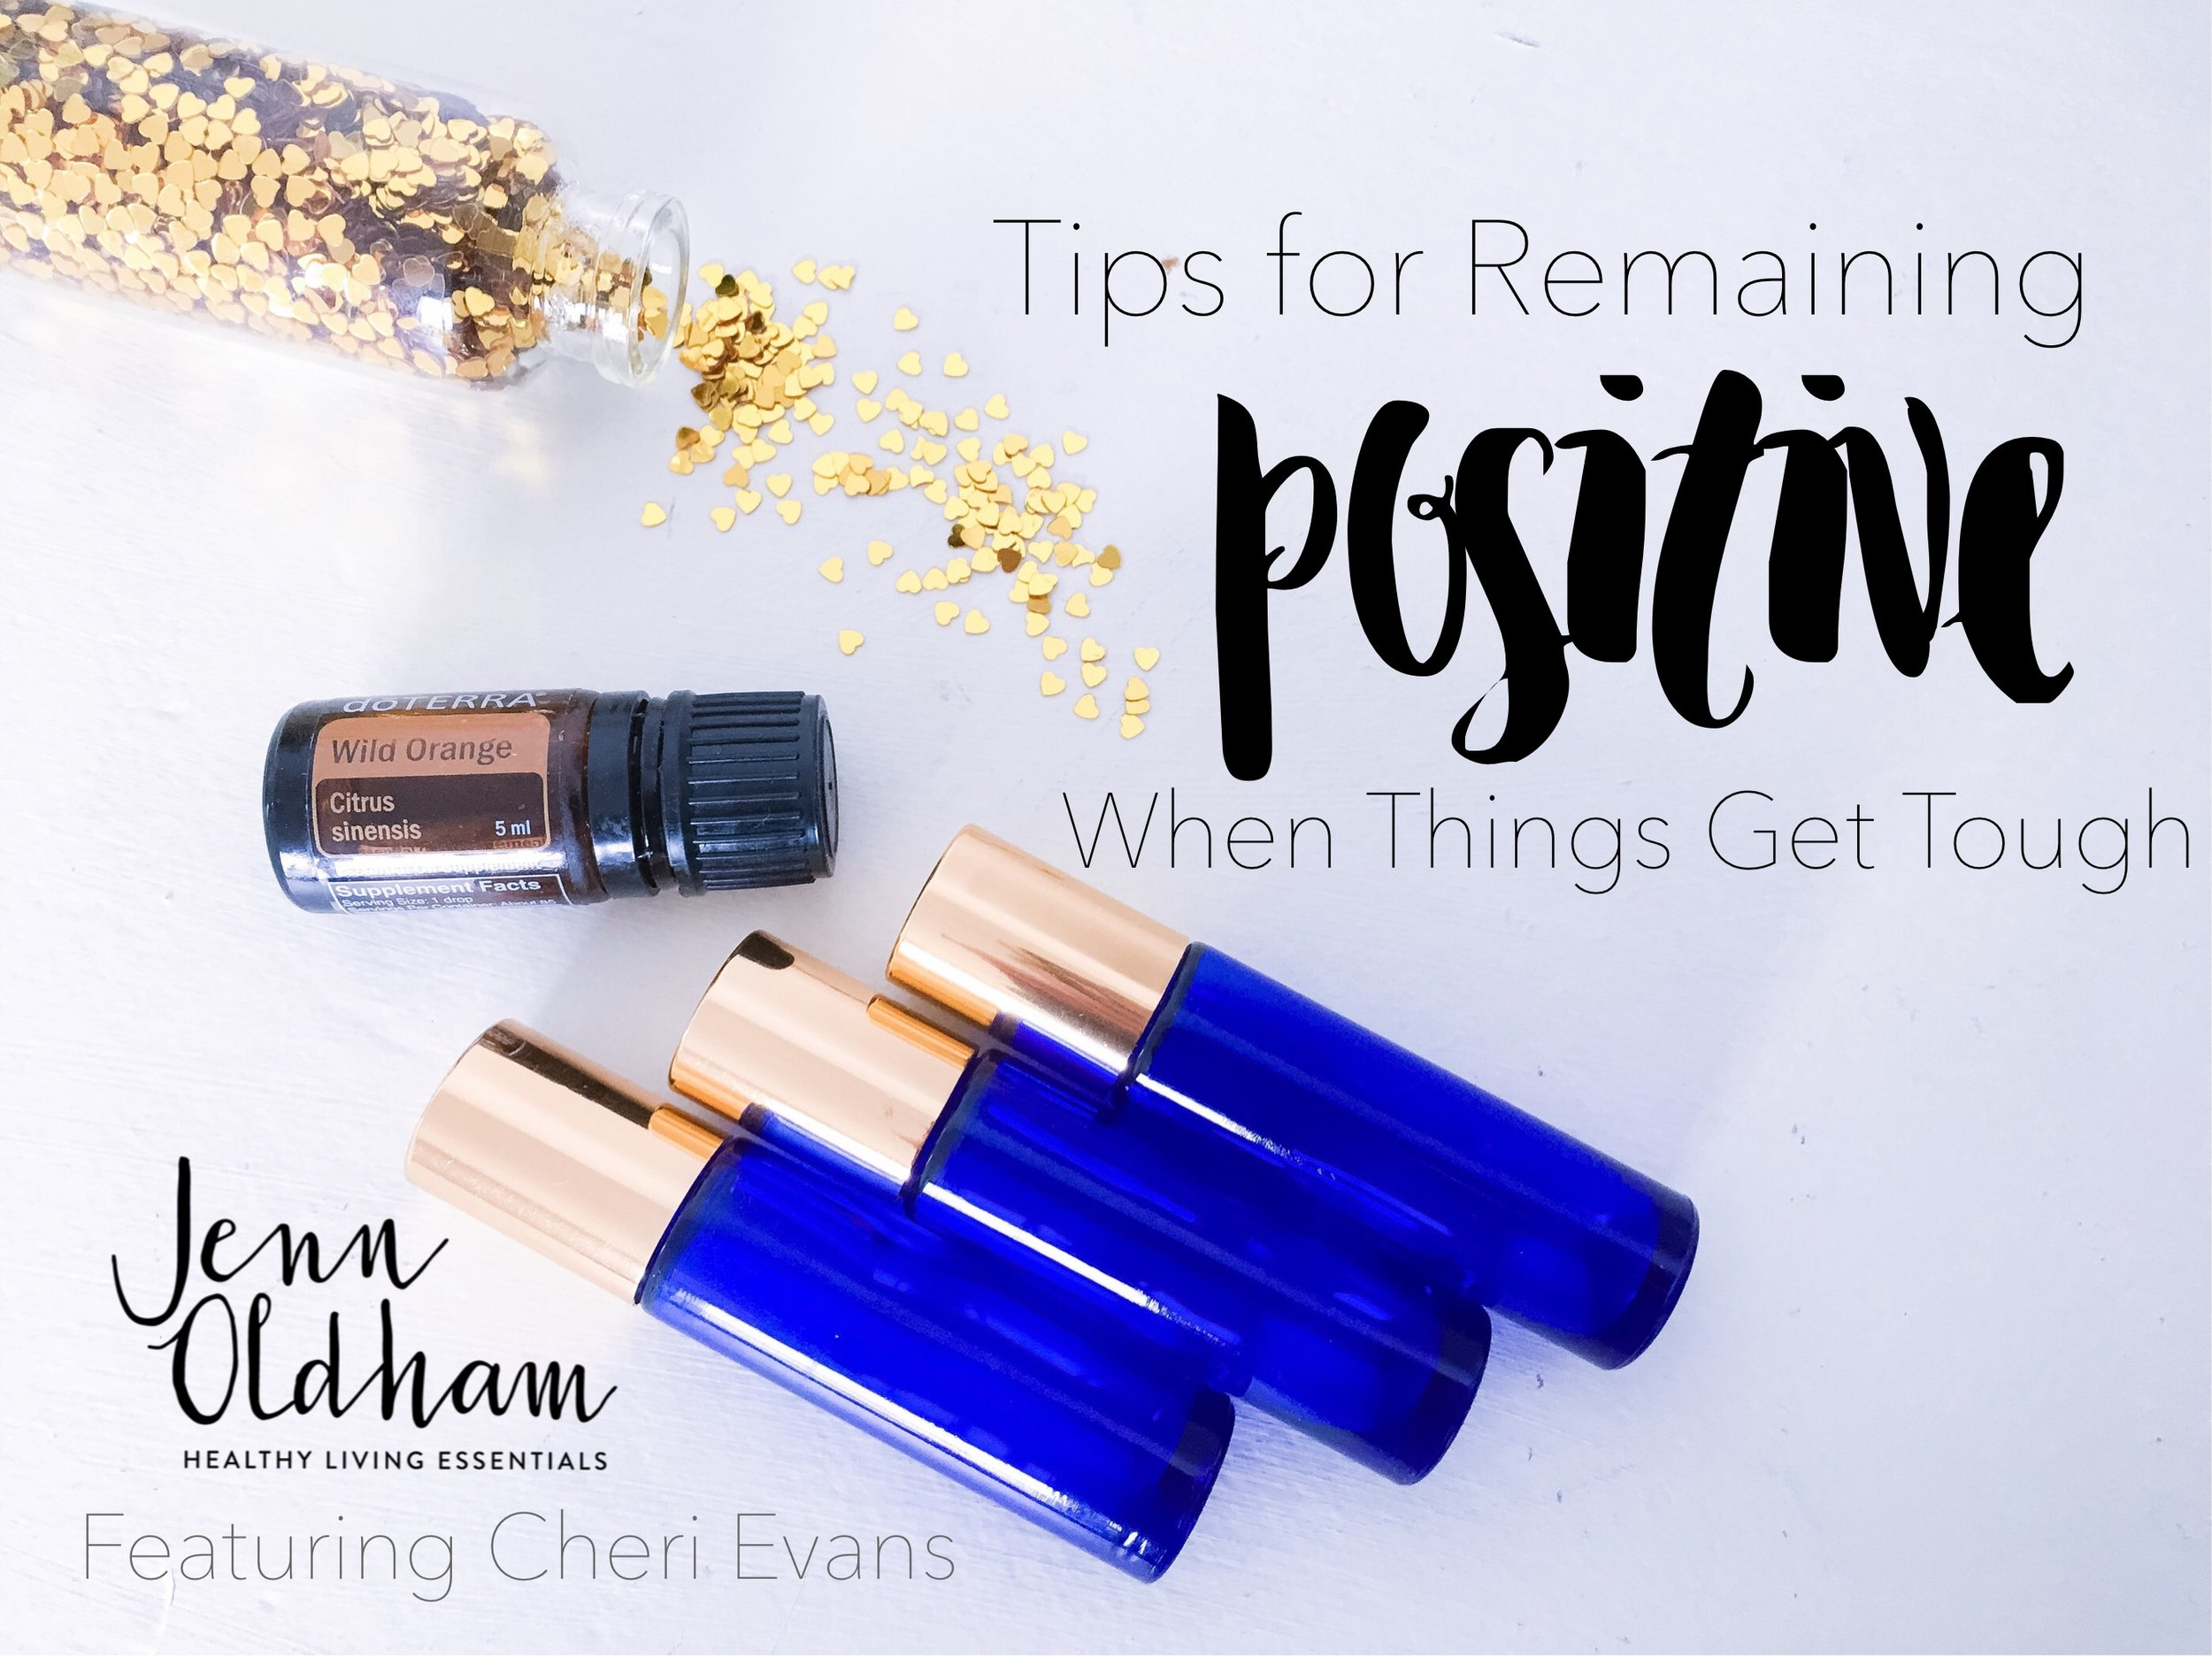 Tips for Remaining Positive